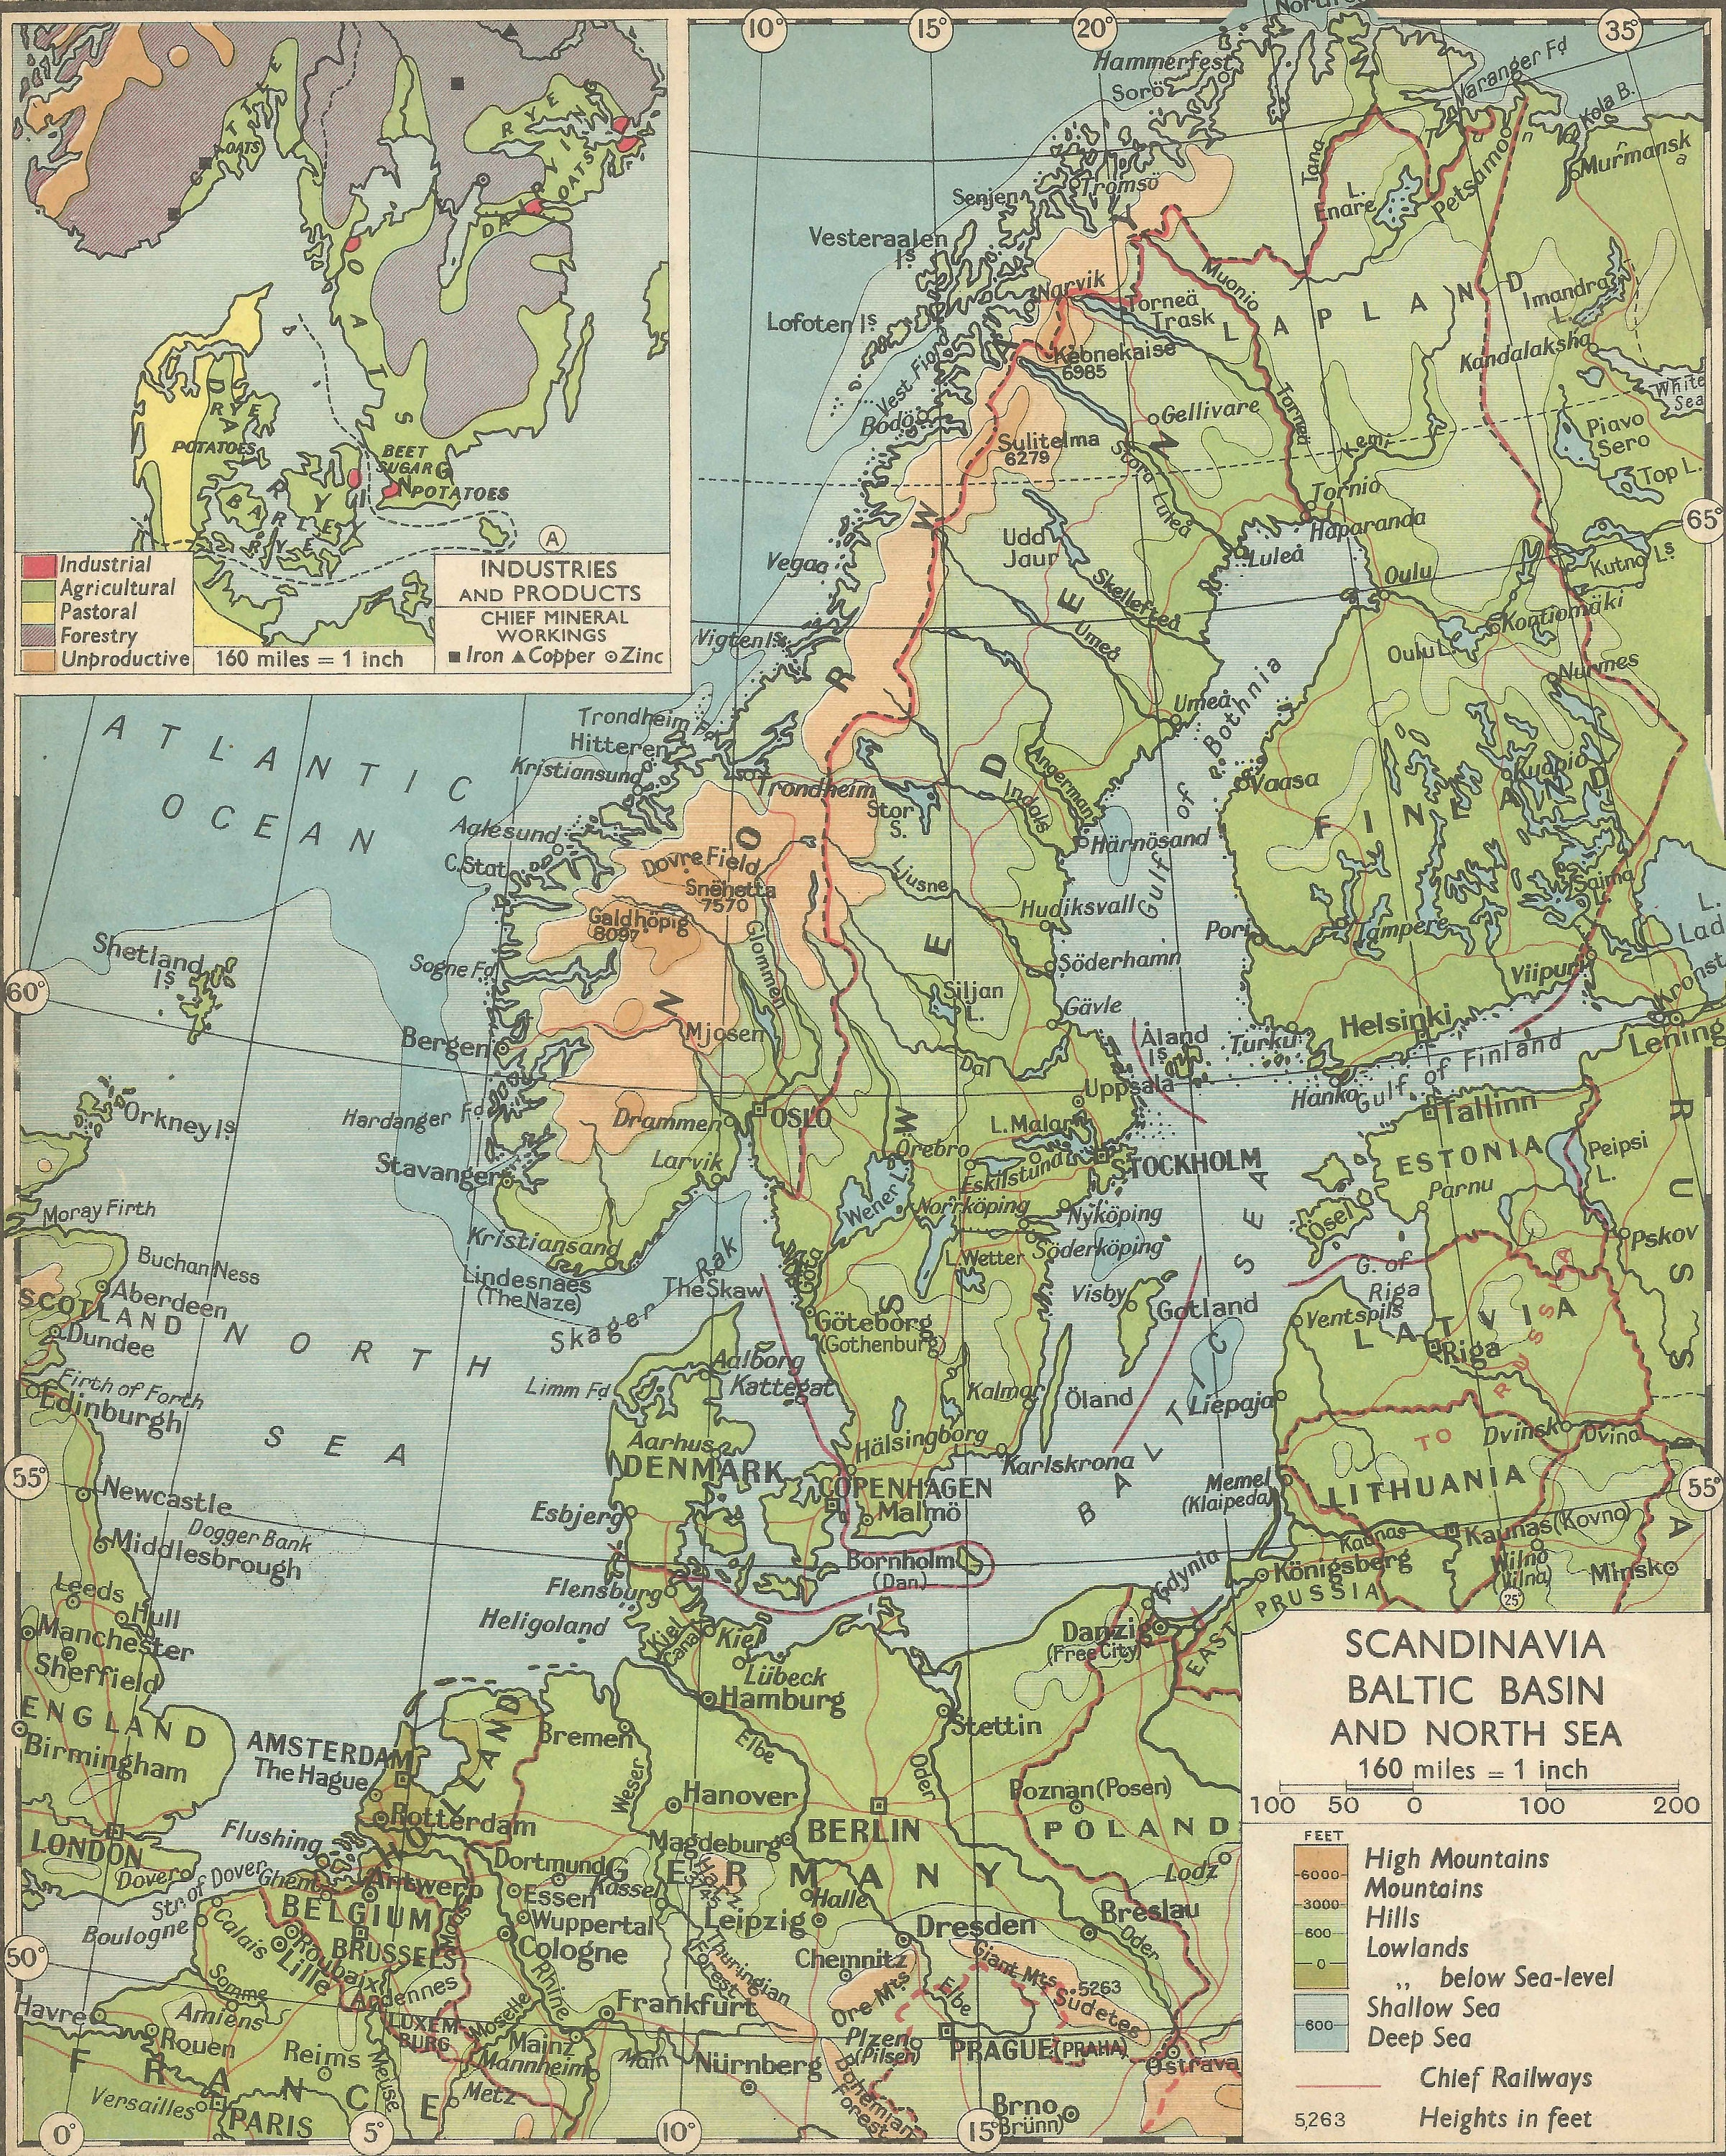 1940s Map Of Europe.Norway Sweden And Denmark Scandinavia Baltic 1940s Europe Old Etsy